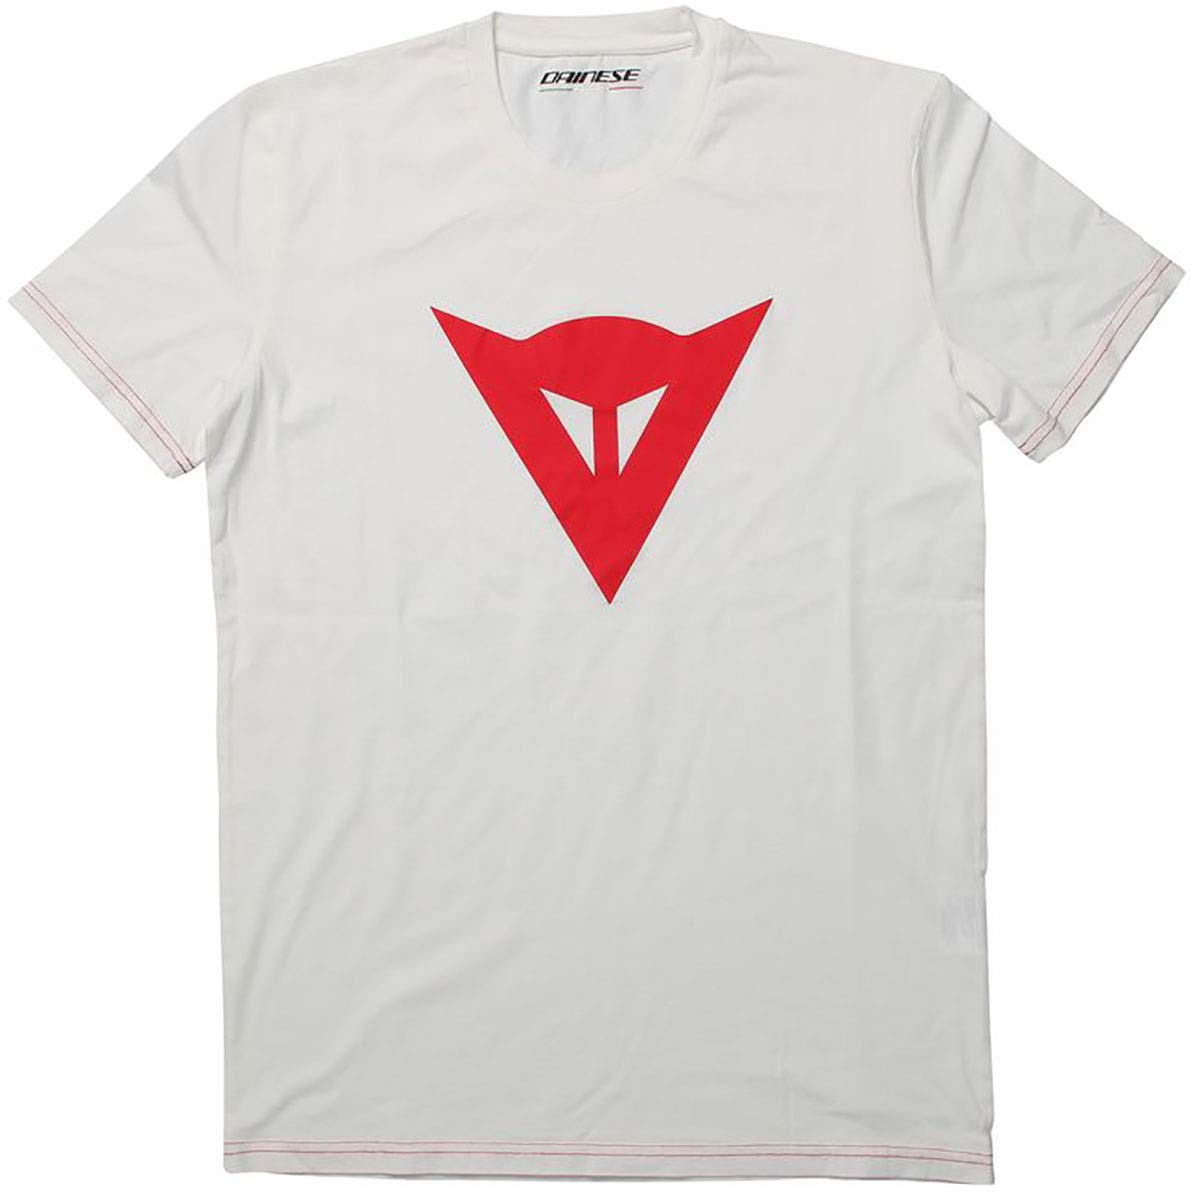 Dainese Men's SPEED DEMON T-SHIRT White M